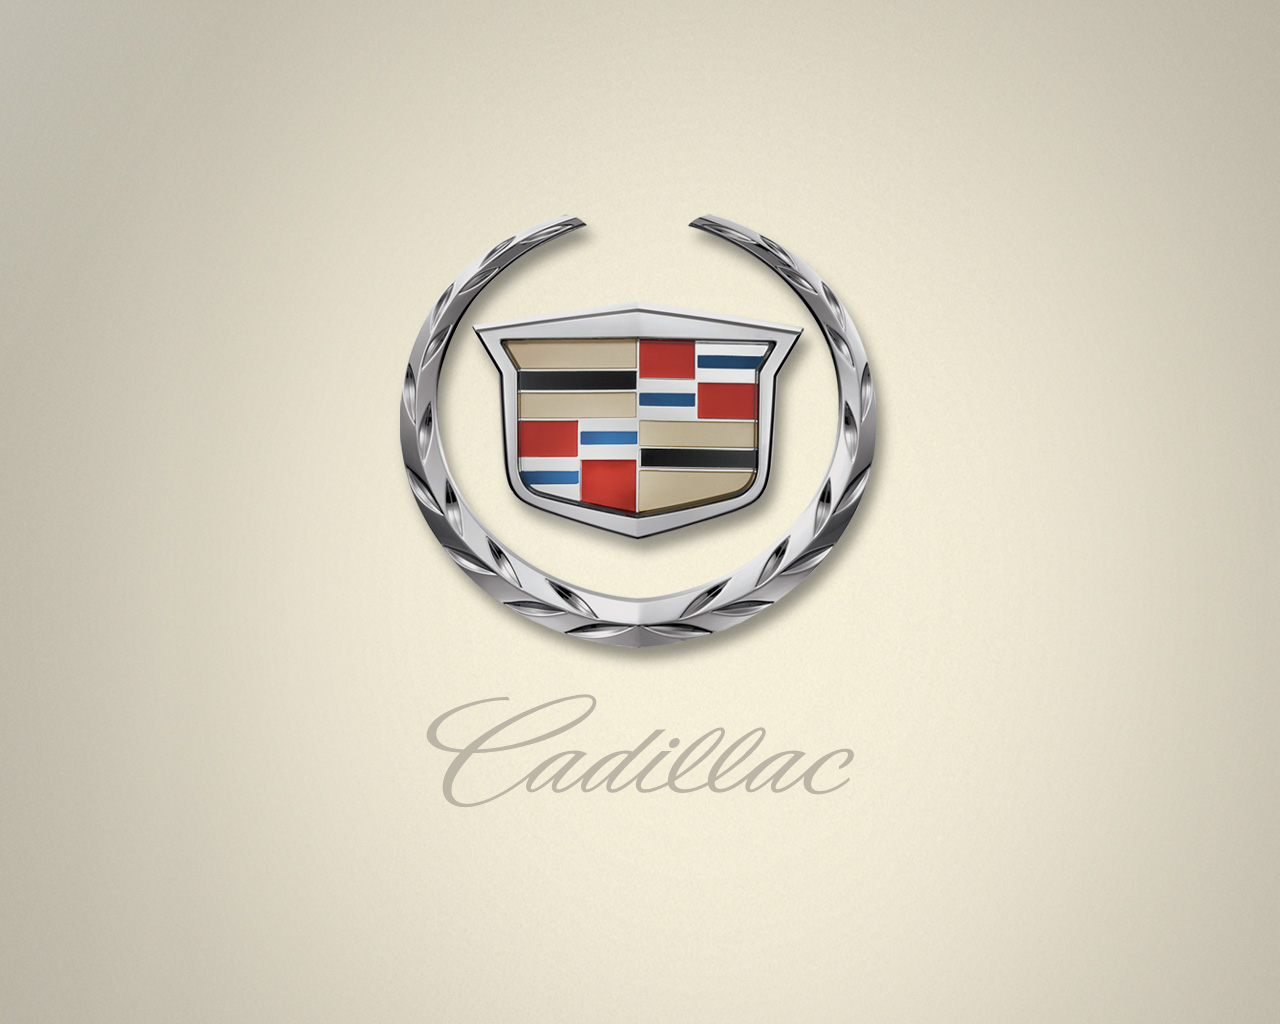 Cadillac Logo Wallpaper